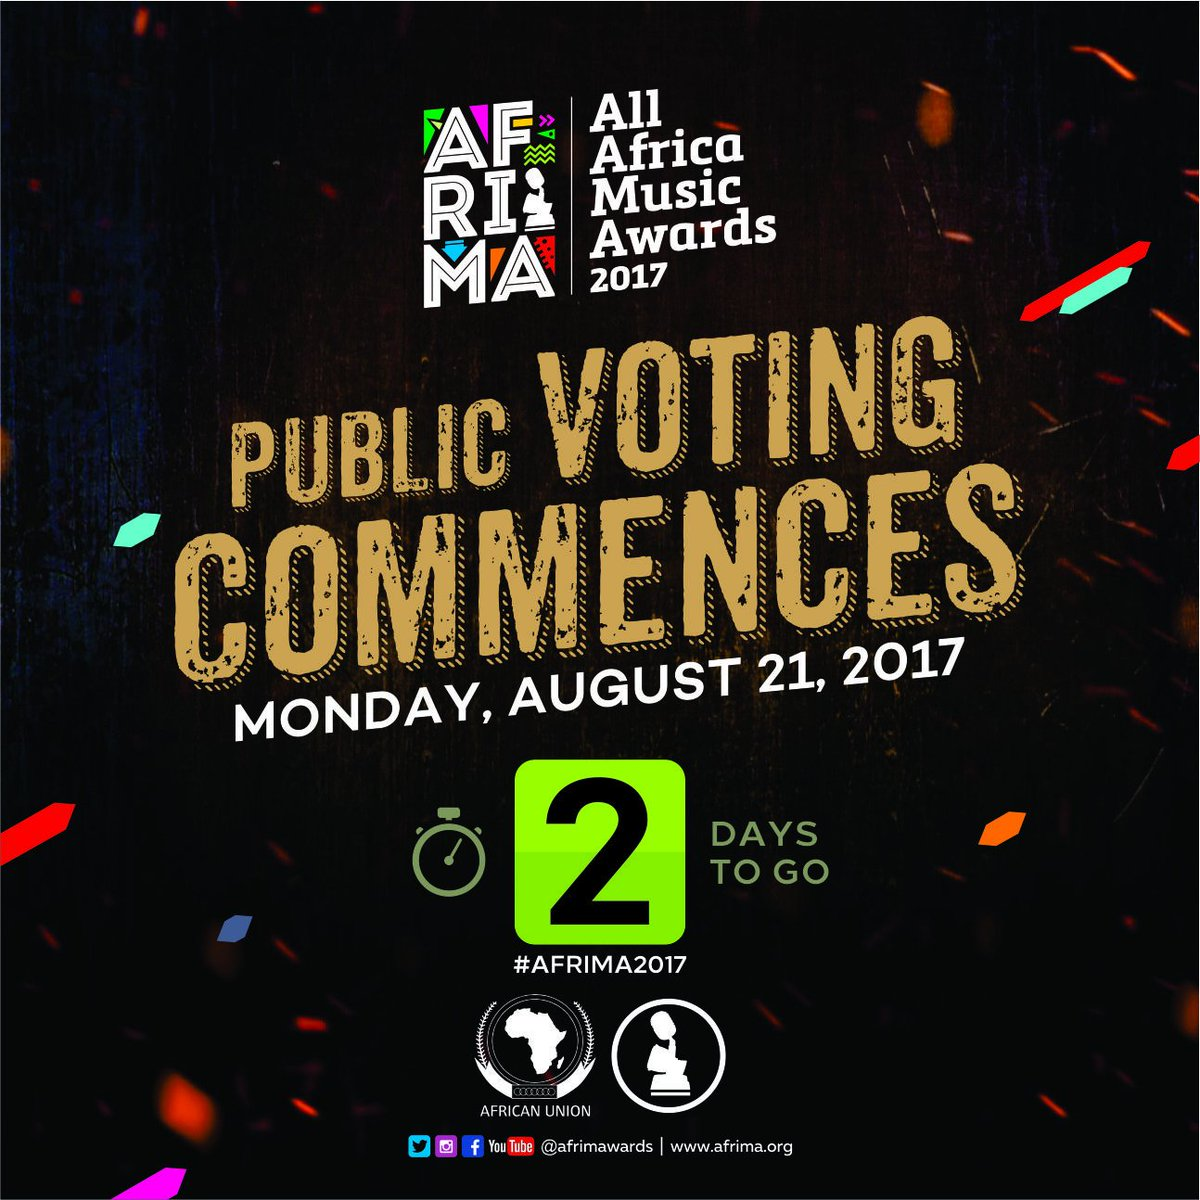 #AfricaDecides   #AFRIMA2017  #Vote the next best music talents on the continent!  #AFRIMA2017PublicVoting Africa&#39;s Biggest Music Event<br>http://pic.twitter.com/STscXxM1PW